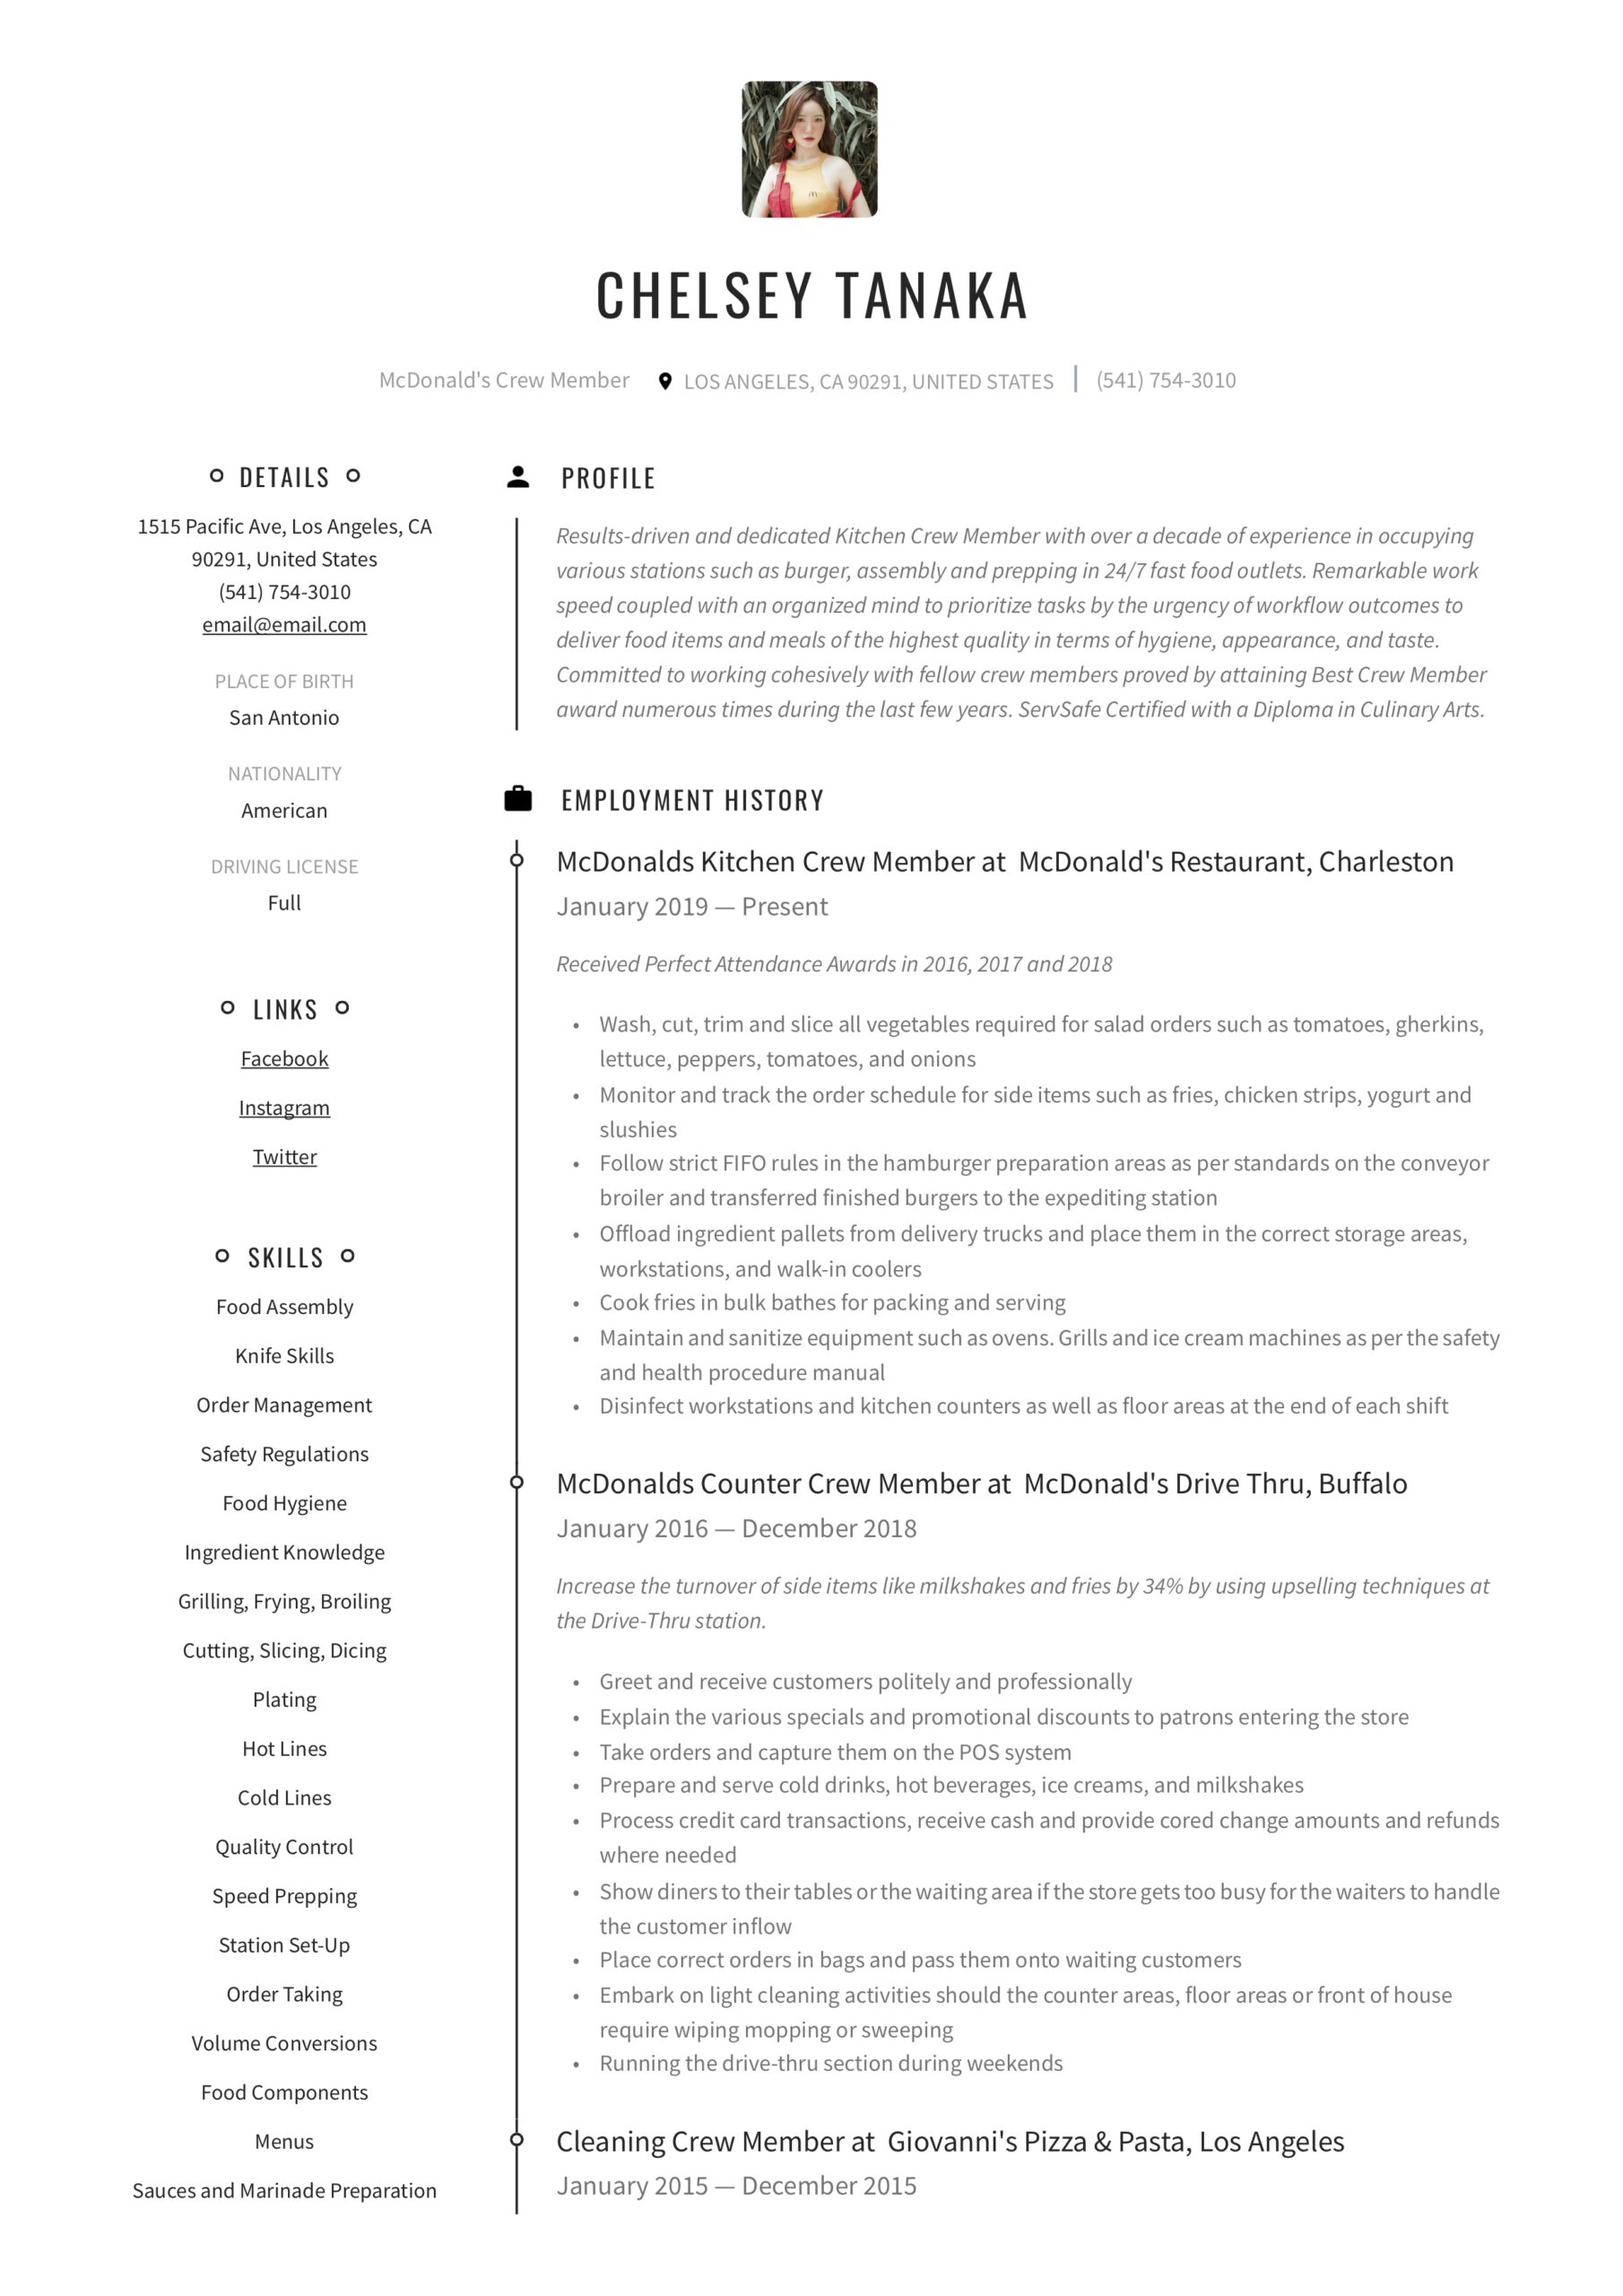 mcdonalds crew member resume writing guide examples maintenance home depot financial Resume Mcdonalds Maintenance Resume